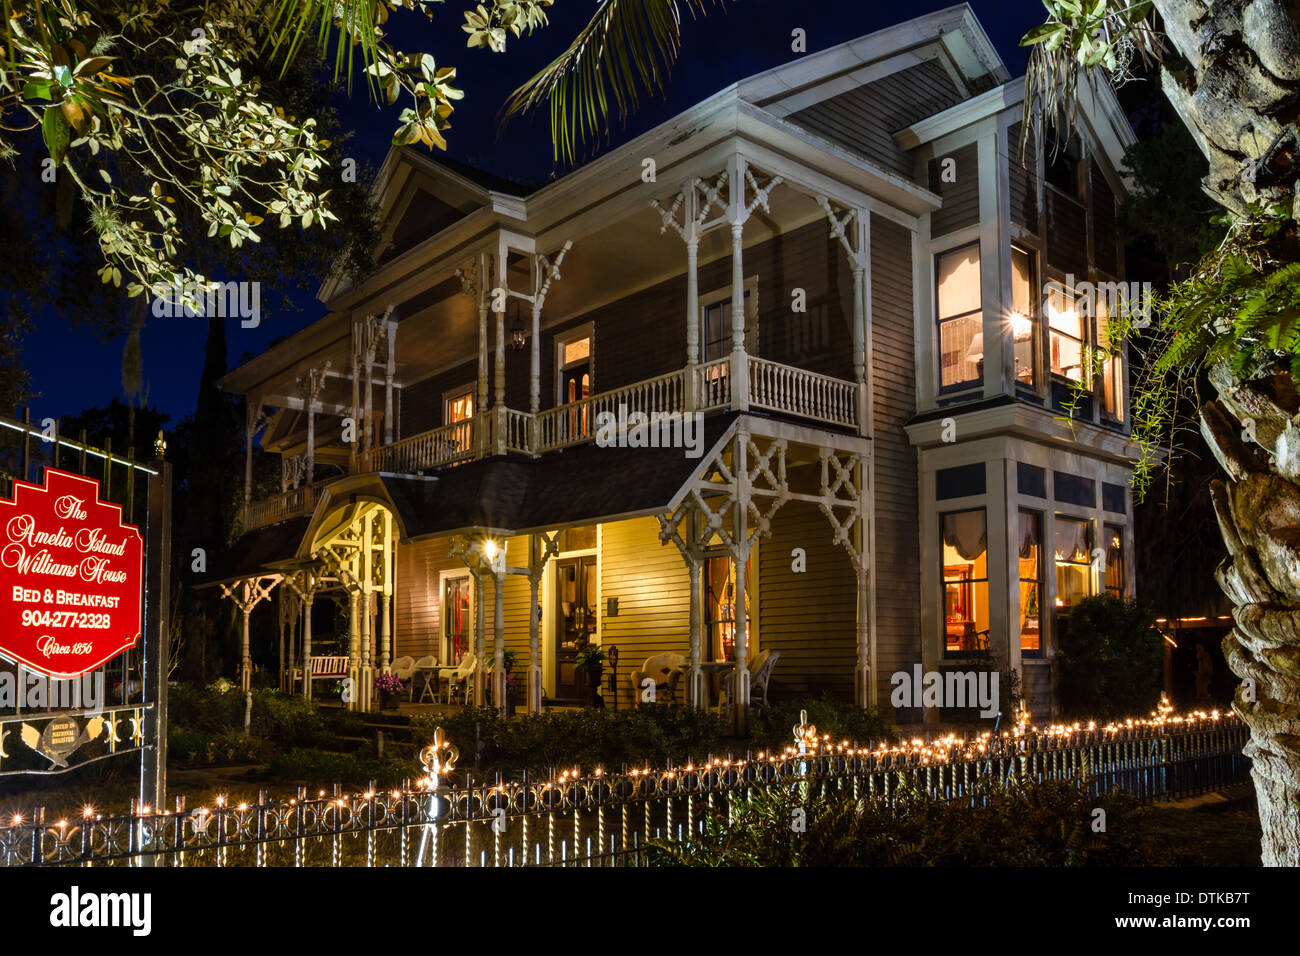 Victorian Home, The Williams House at twilight, Fernandina Beach, Florida - Stock Image